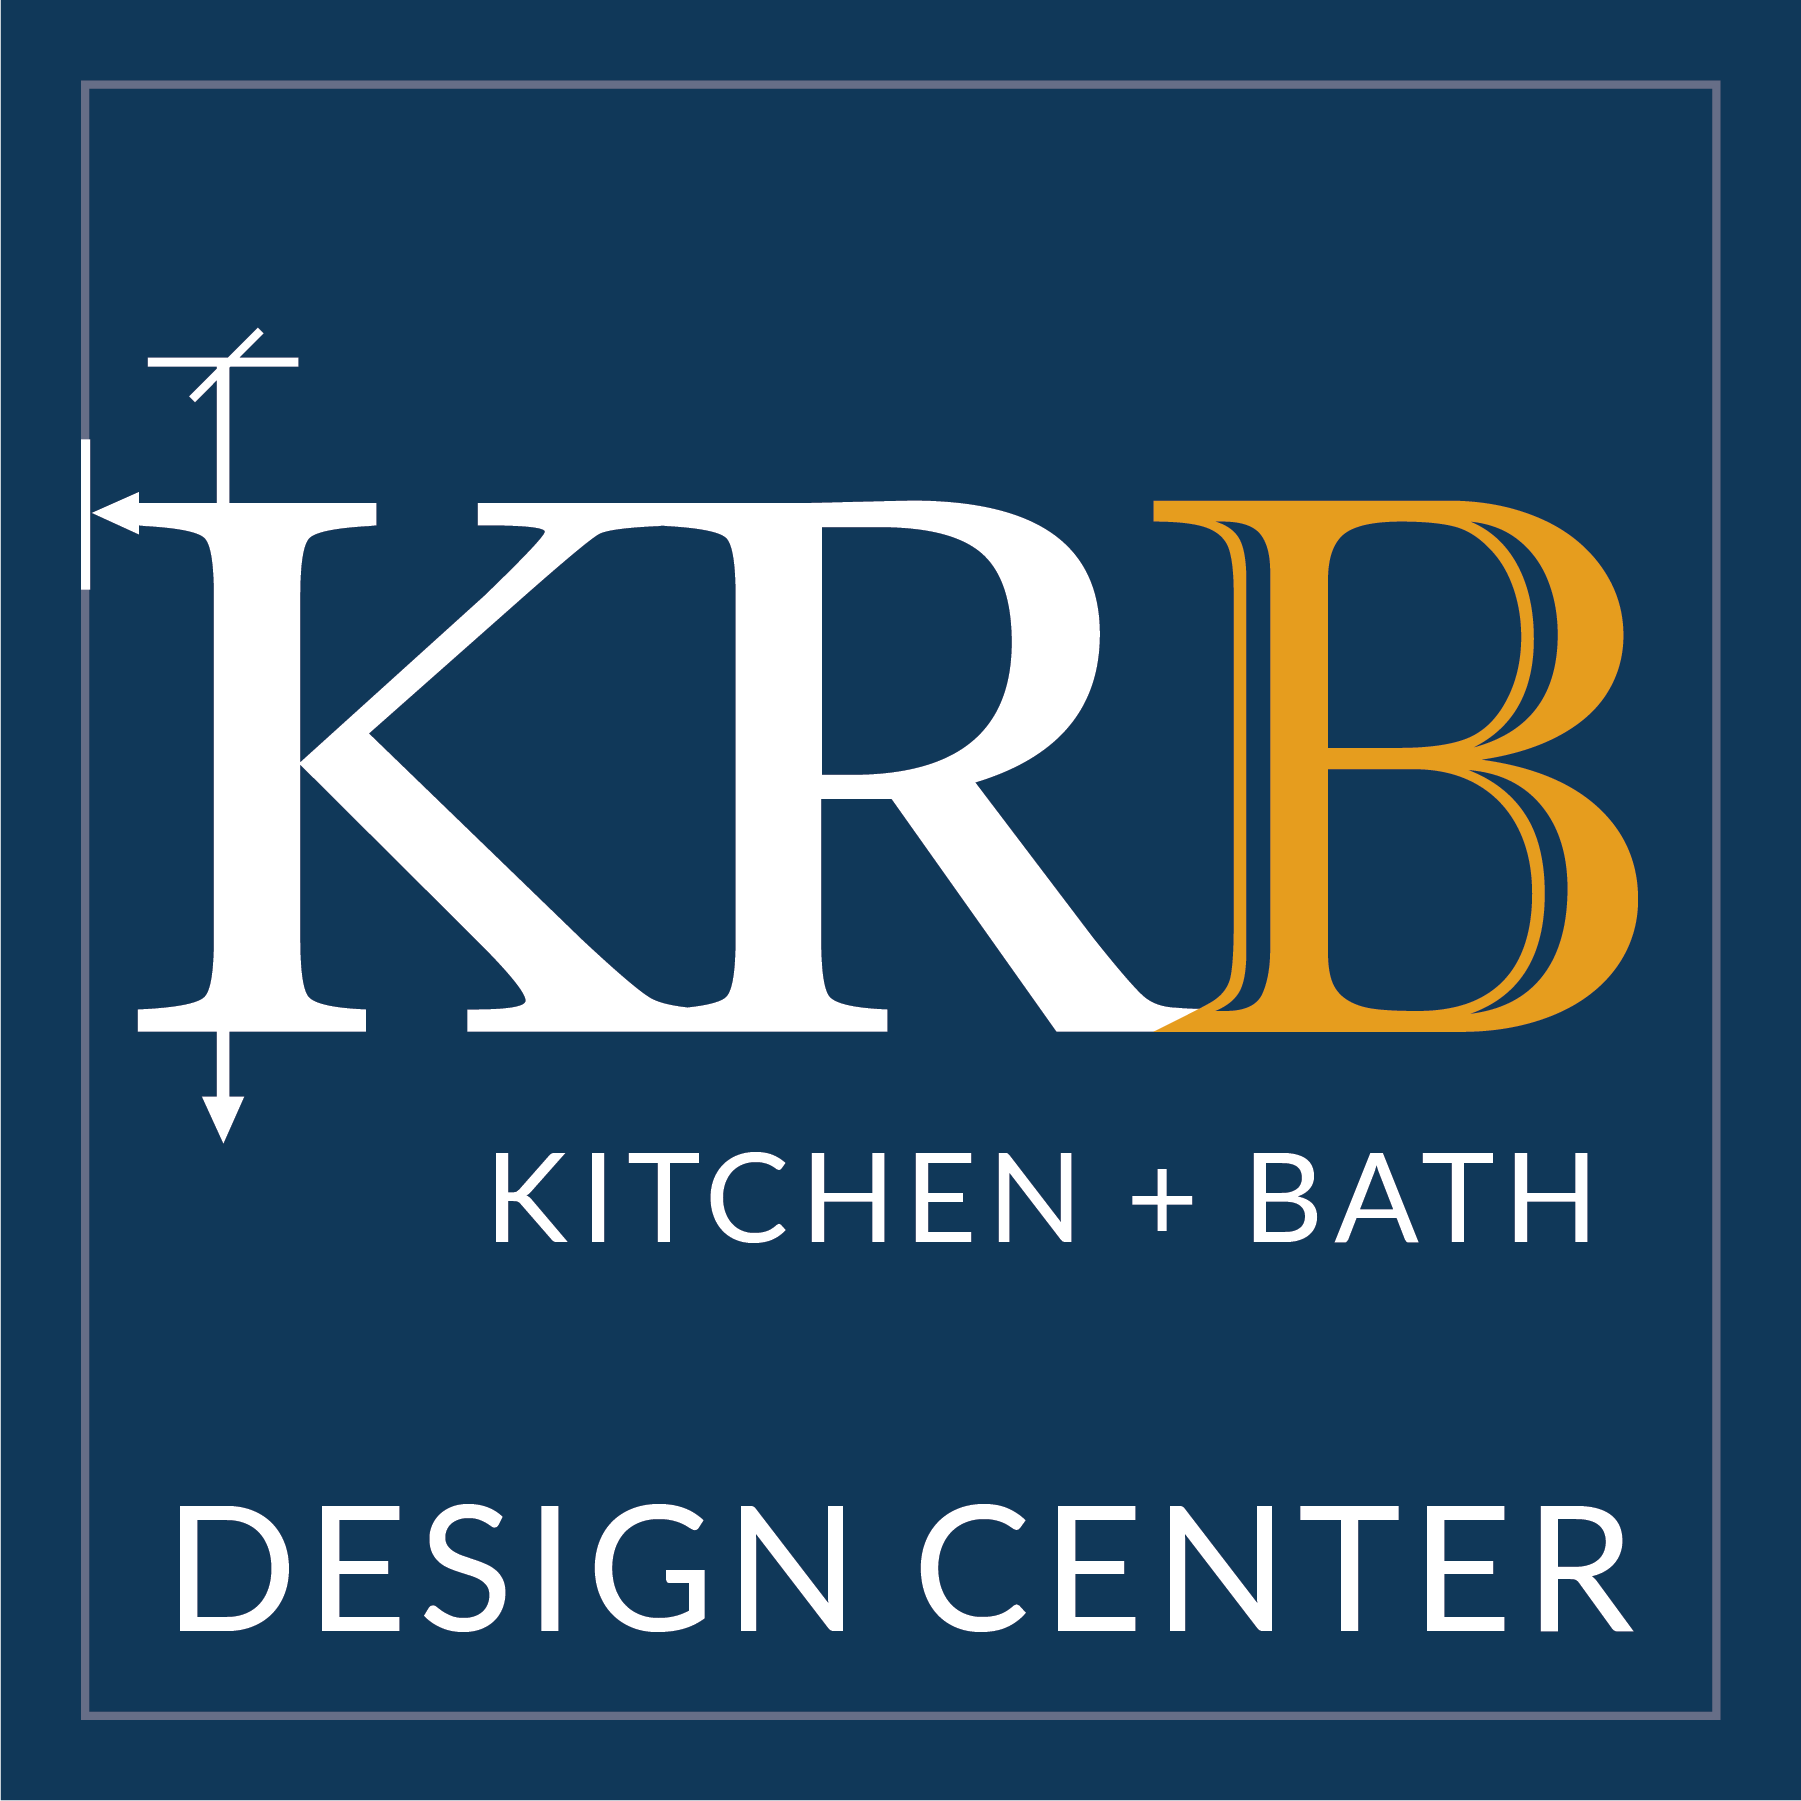 Kevin Roy Building & Cabinet Company